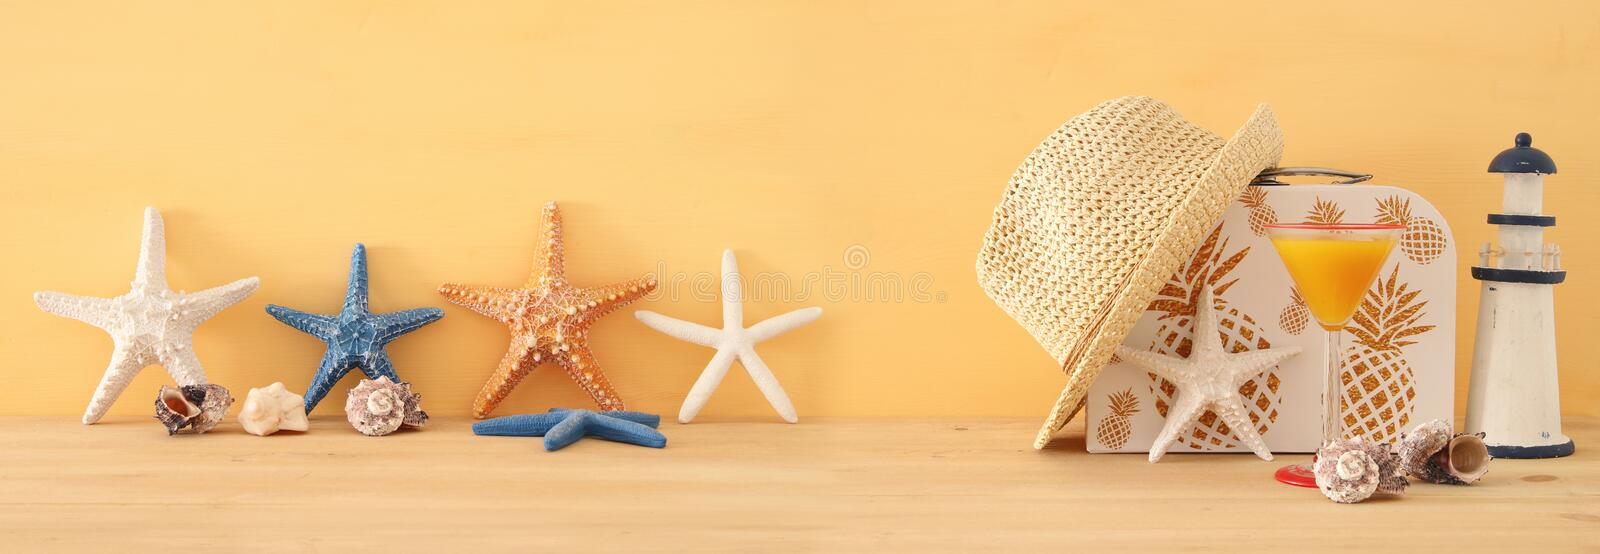 Nautical, vacation and travel banner with sea life style objects over wooden table. Nautical, vacation and travel banner with sea life style objects over wooden royalty free stock photo